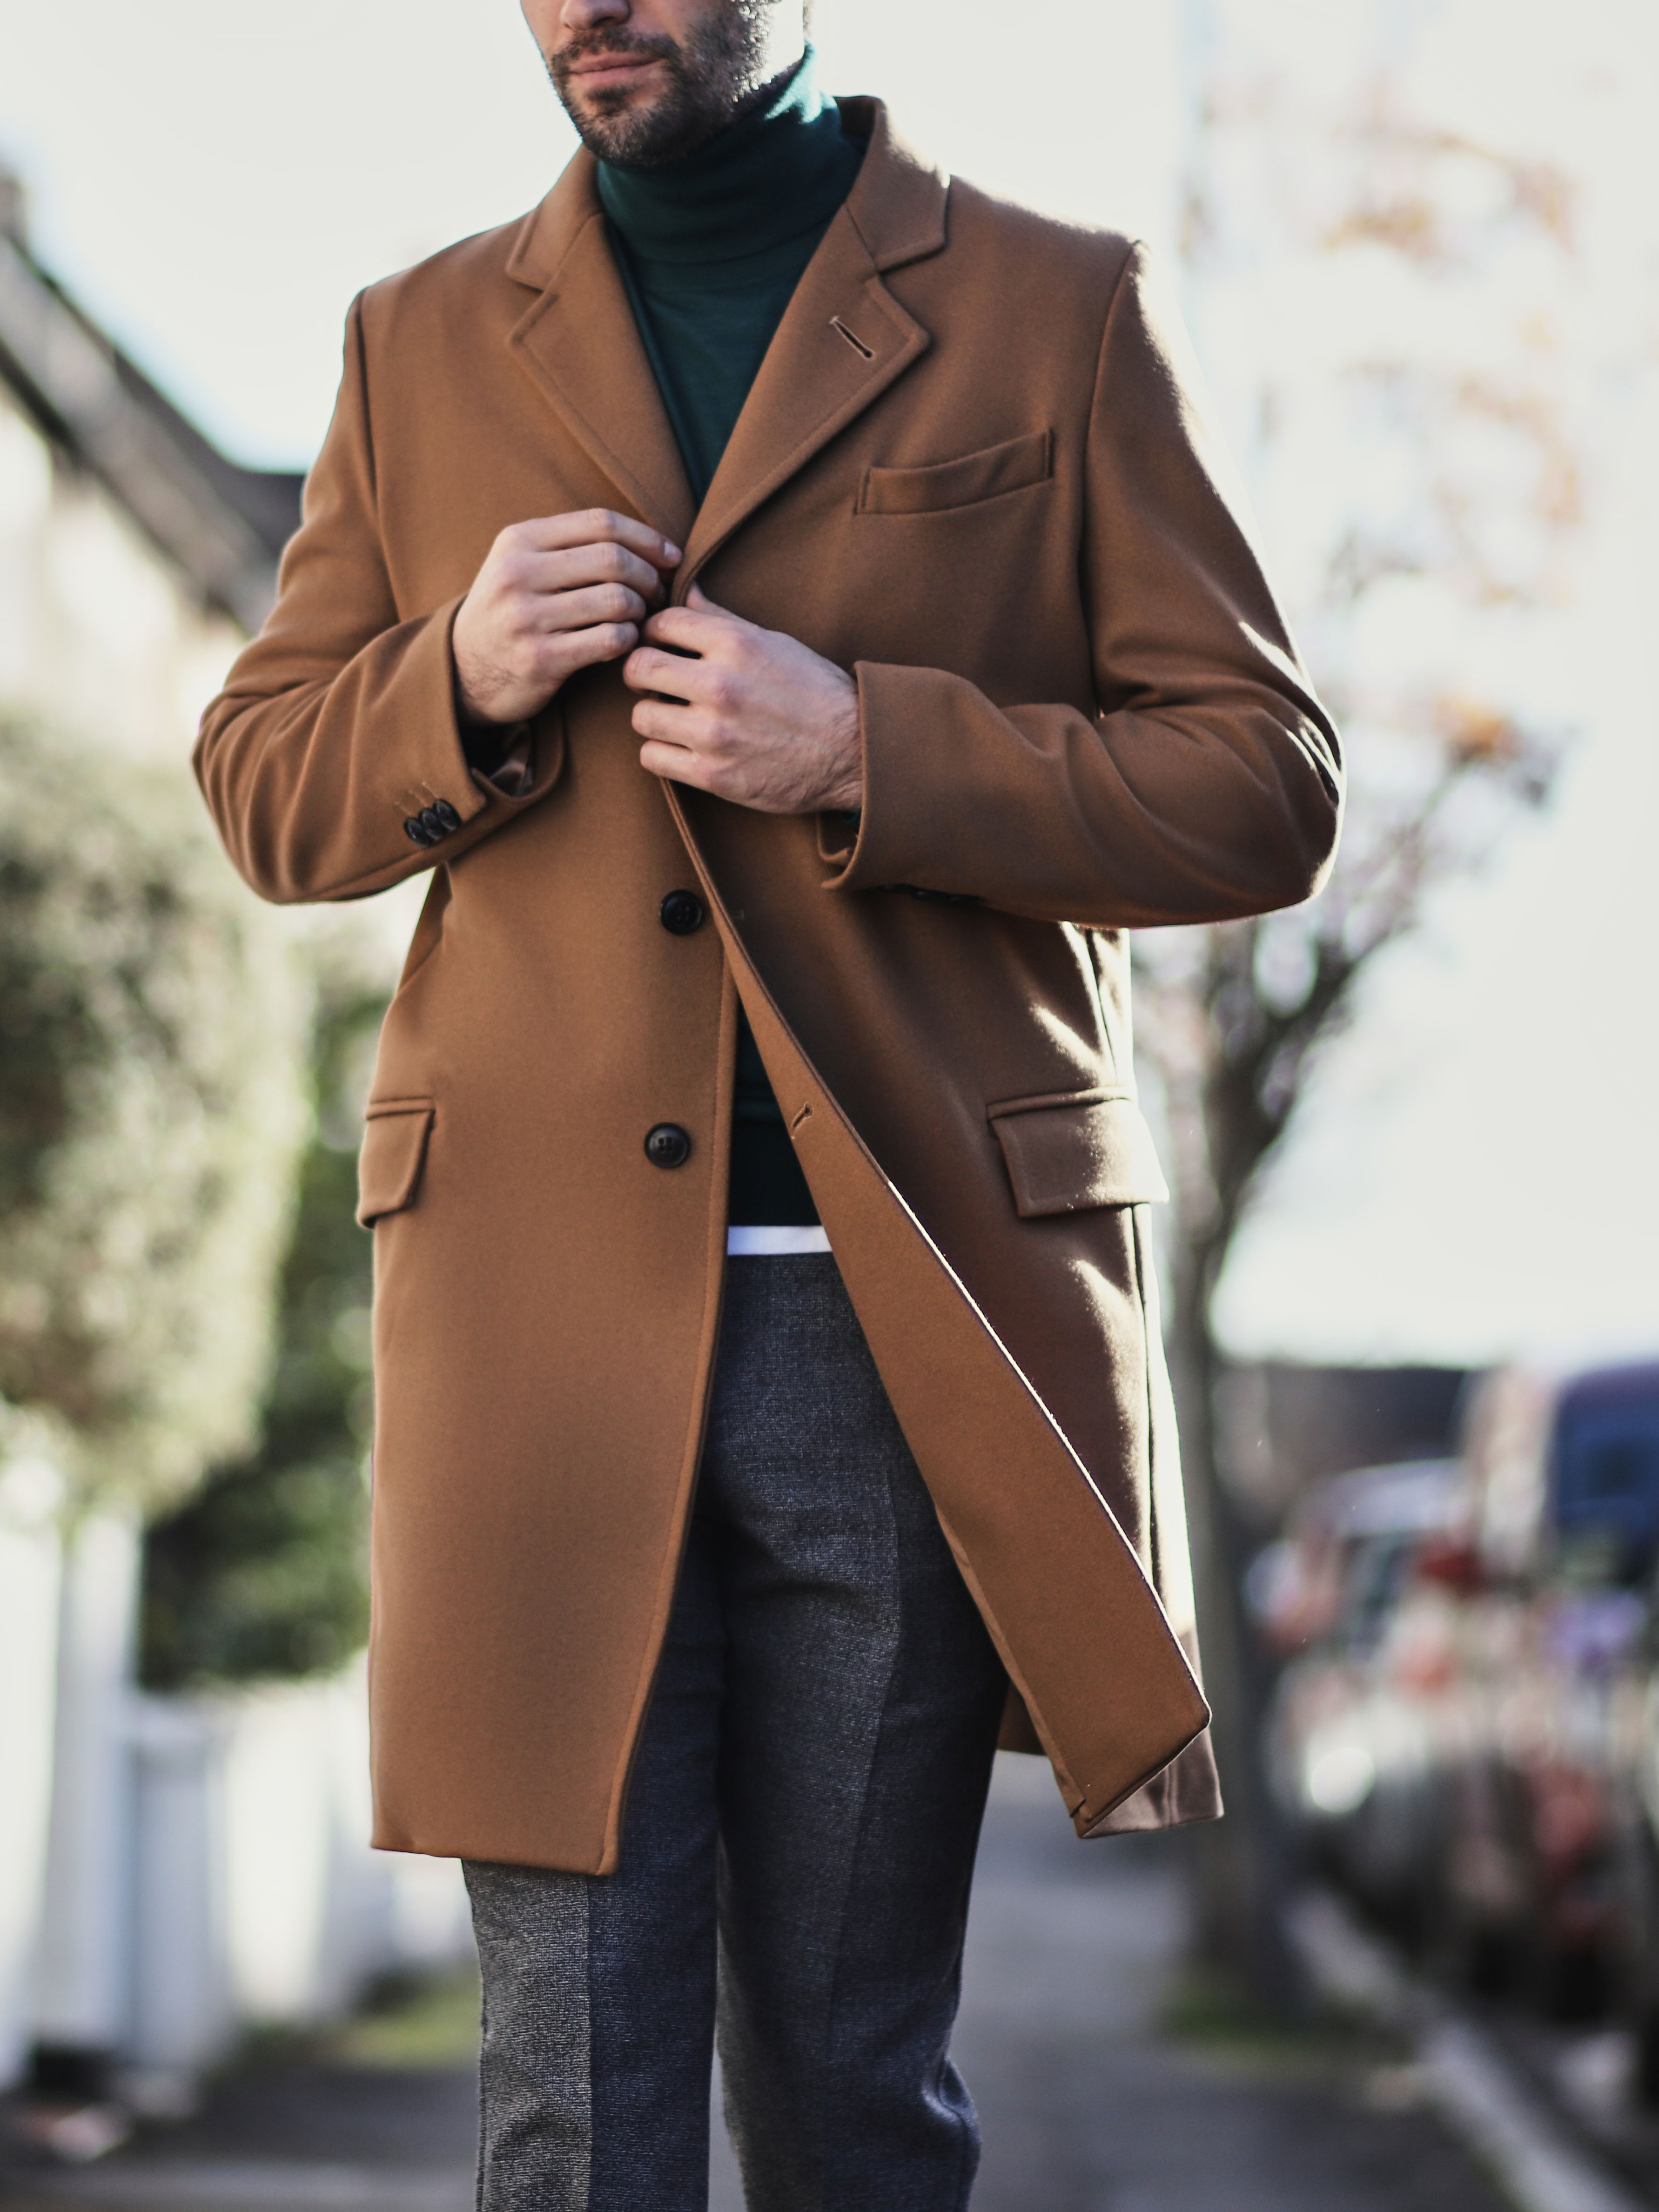 Men's outfit idea for 2021 with camel coat, lightweight rollneck sweater, gray dress pants, brown chelsea boots. Suitable for fall and winter.